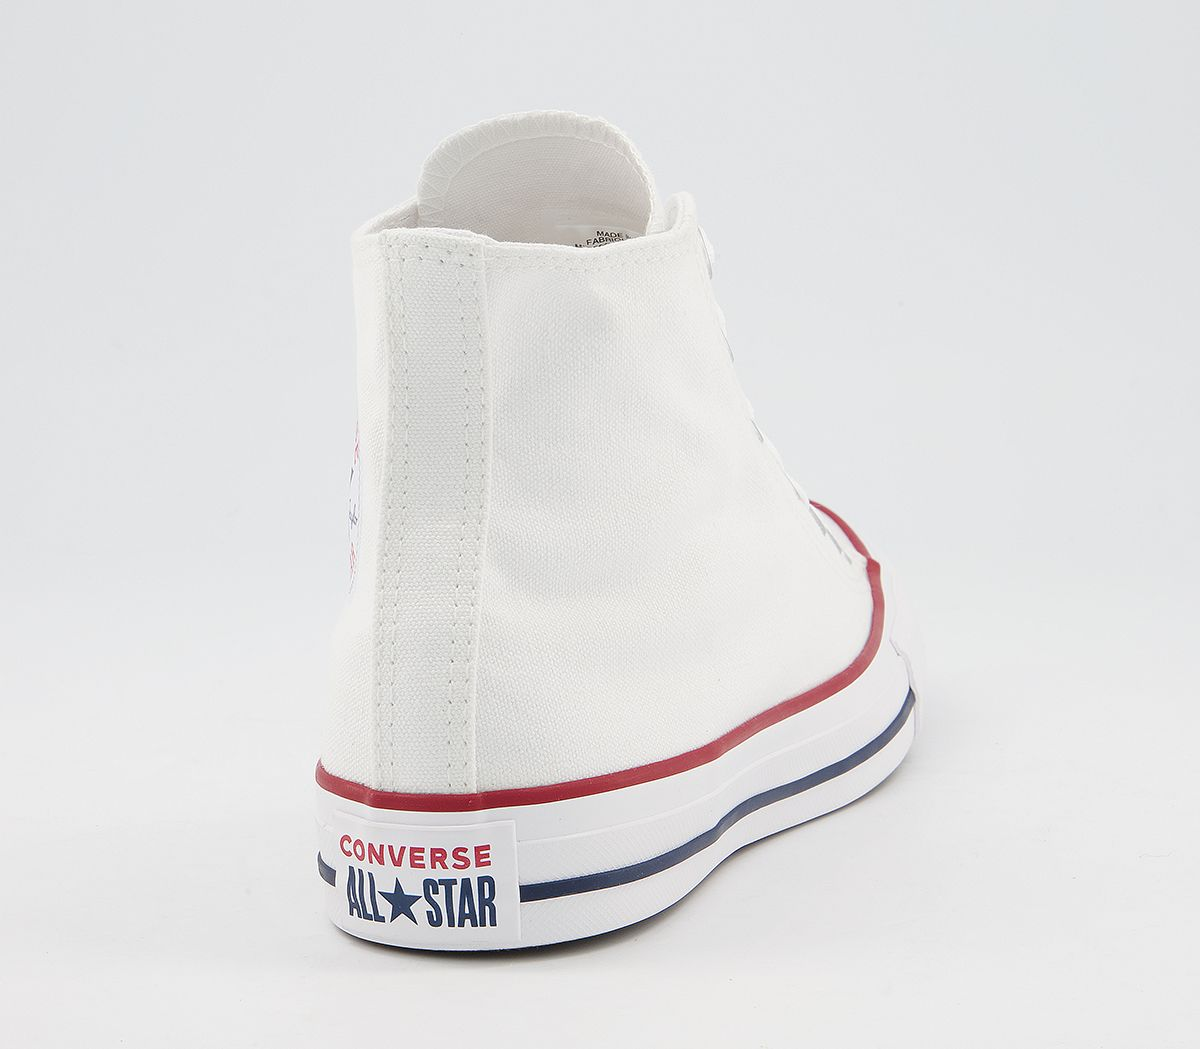 80c1fad29263 Converse All Star hi optical white canvas